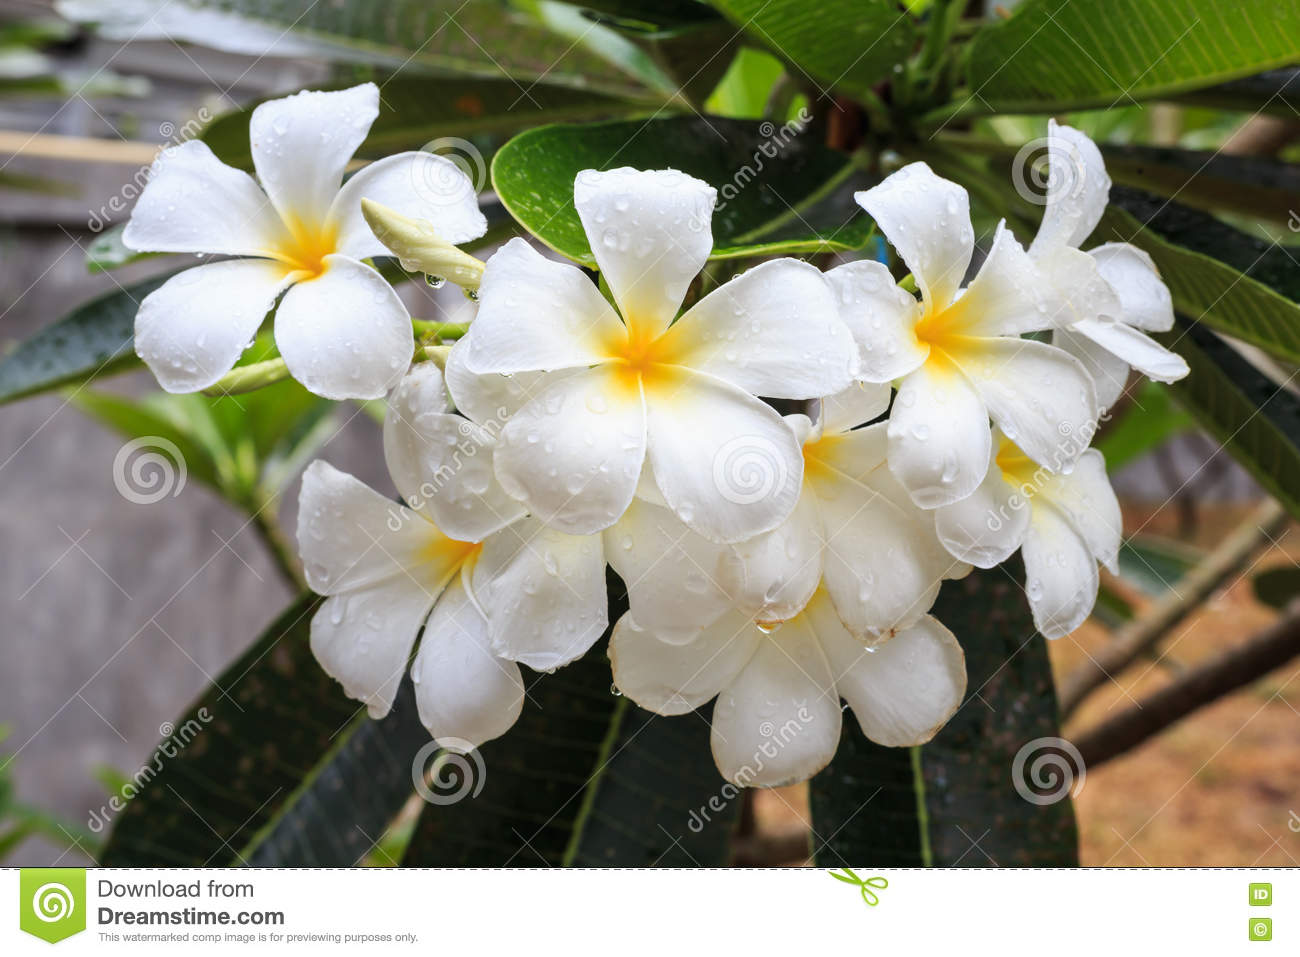 white and yellow tropical flowers, frangipani, plumeria on tree, Beautiful flower